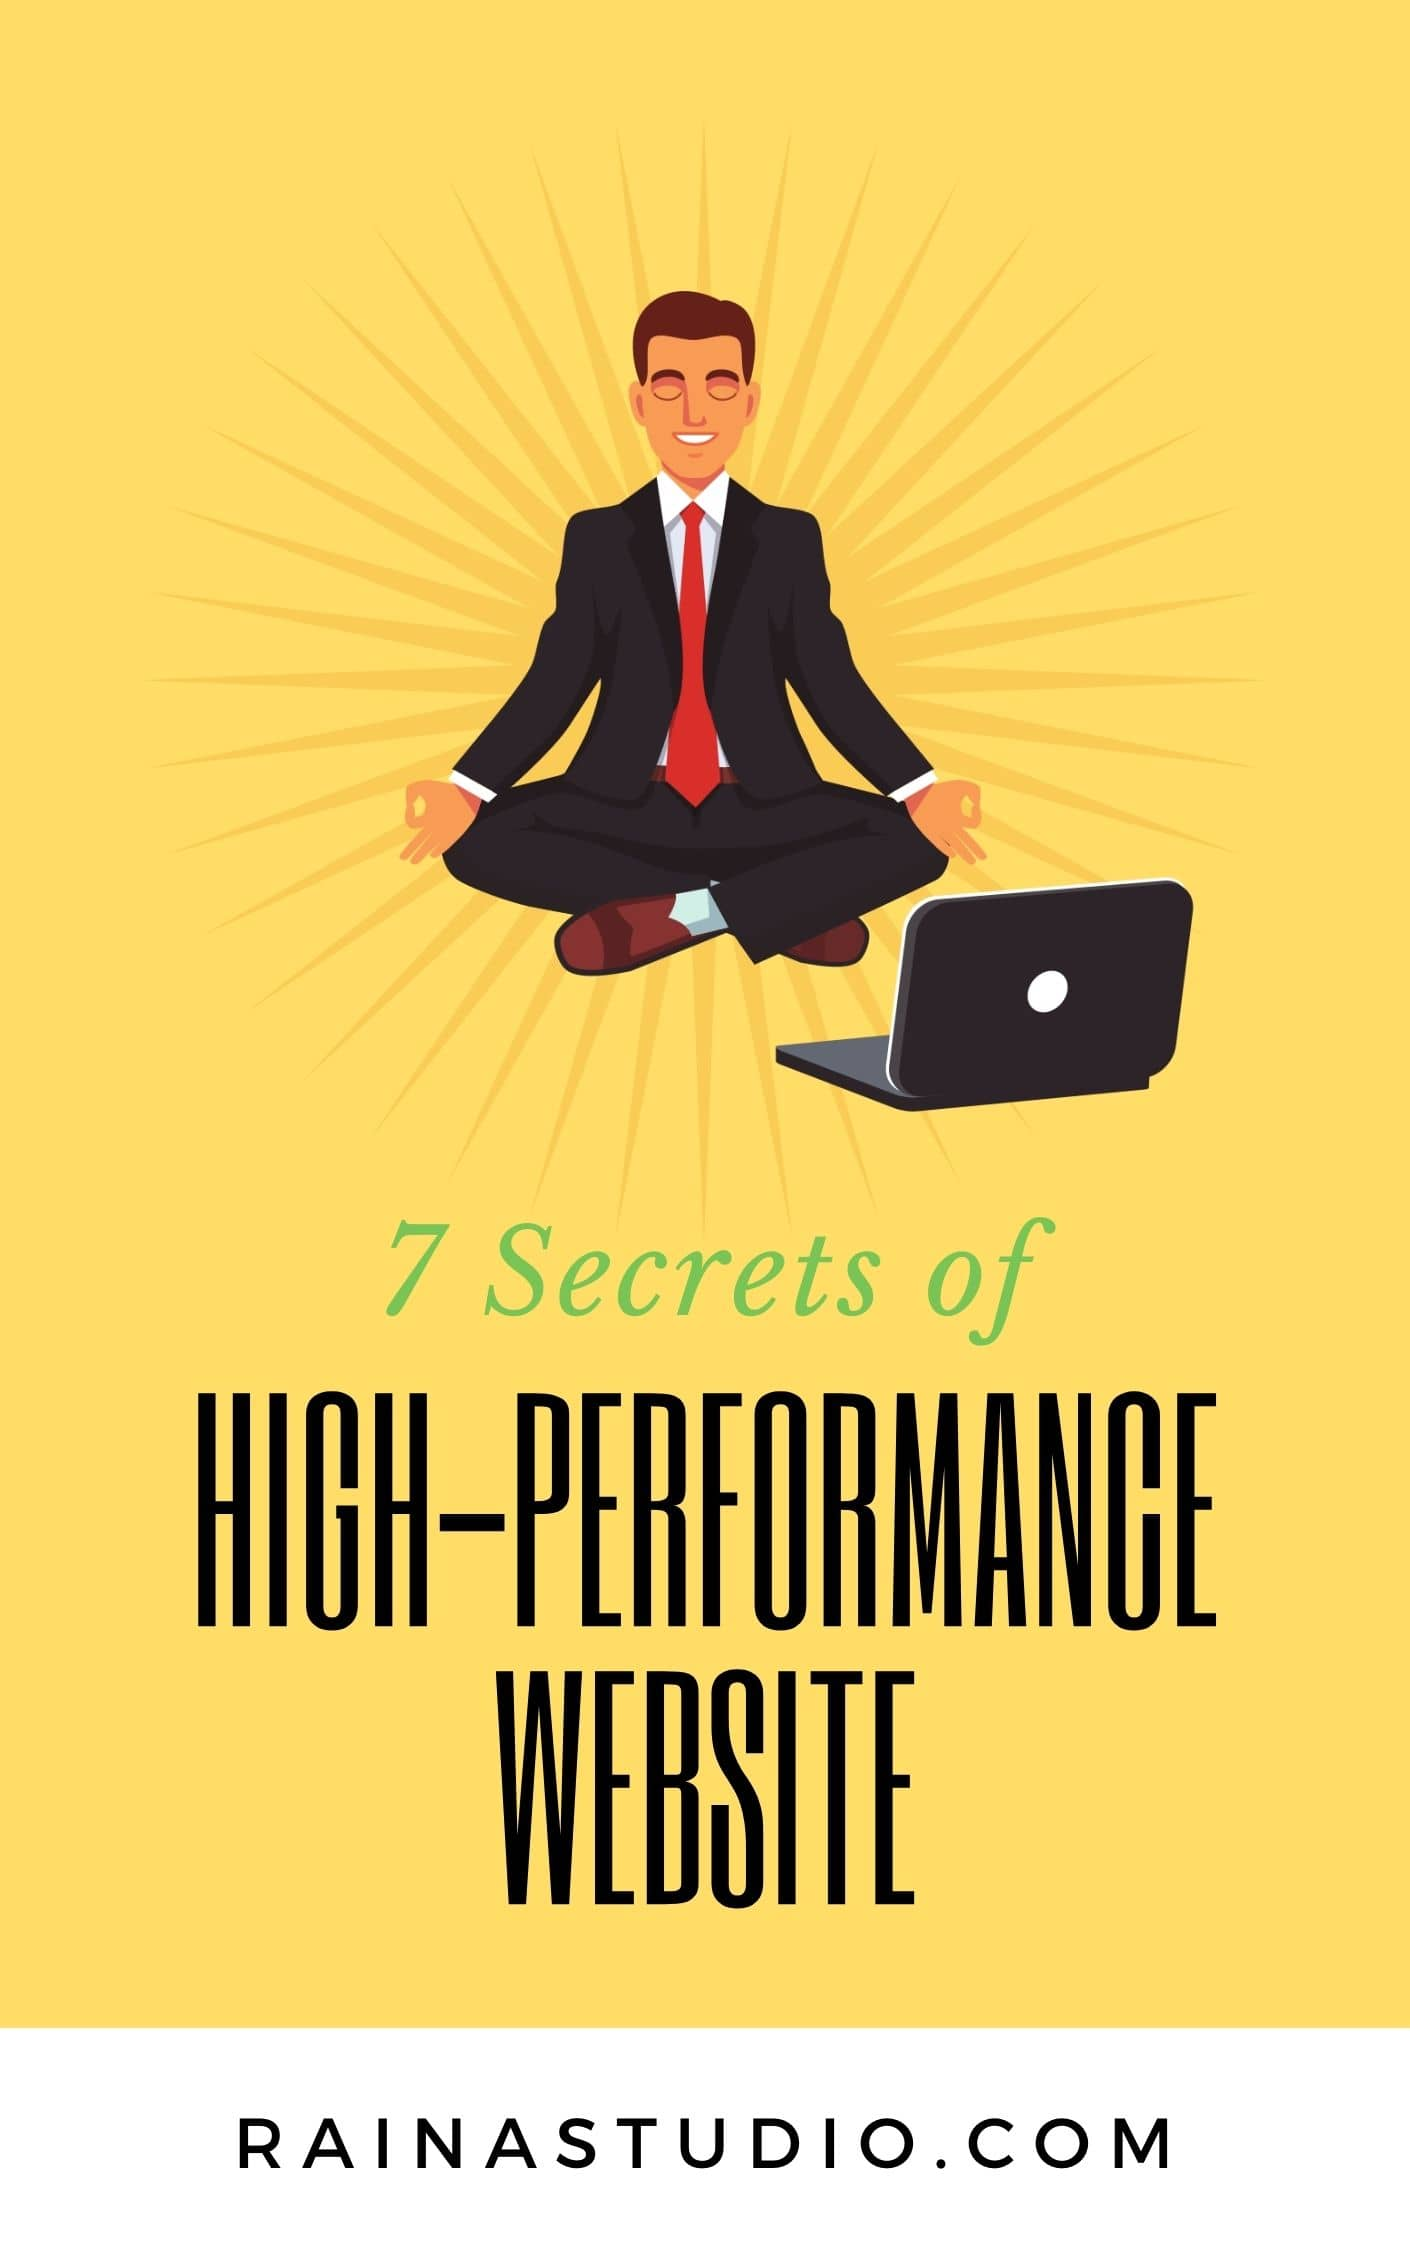 Reveal 7 Secrets of High-Performance Website